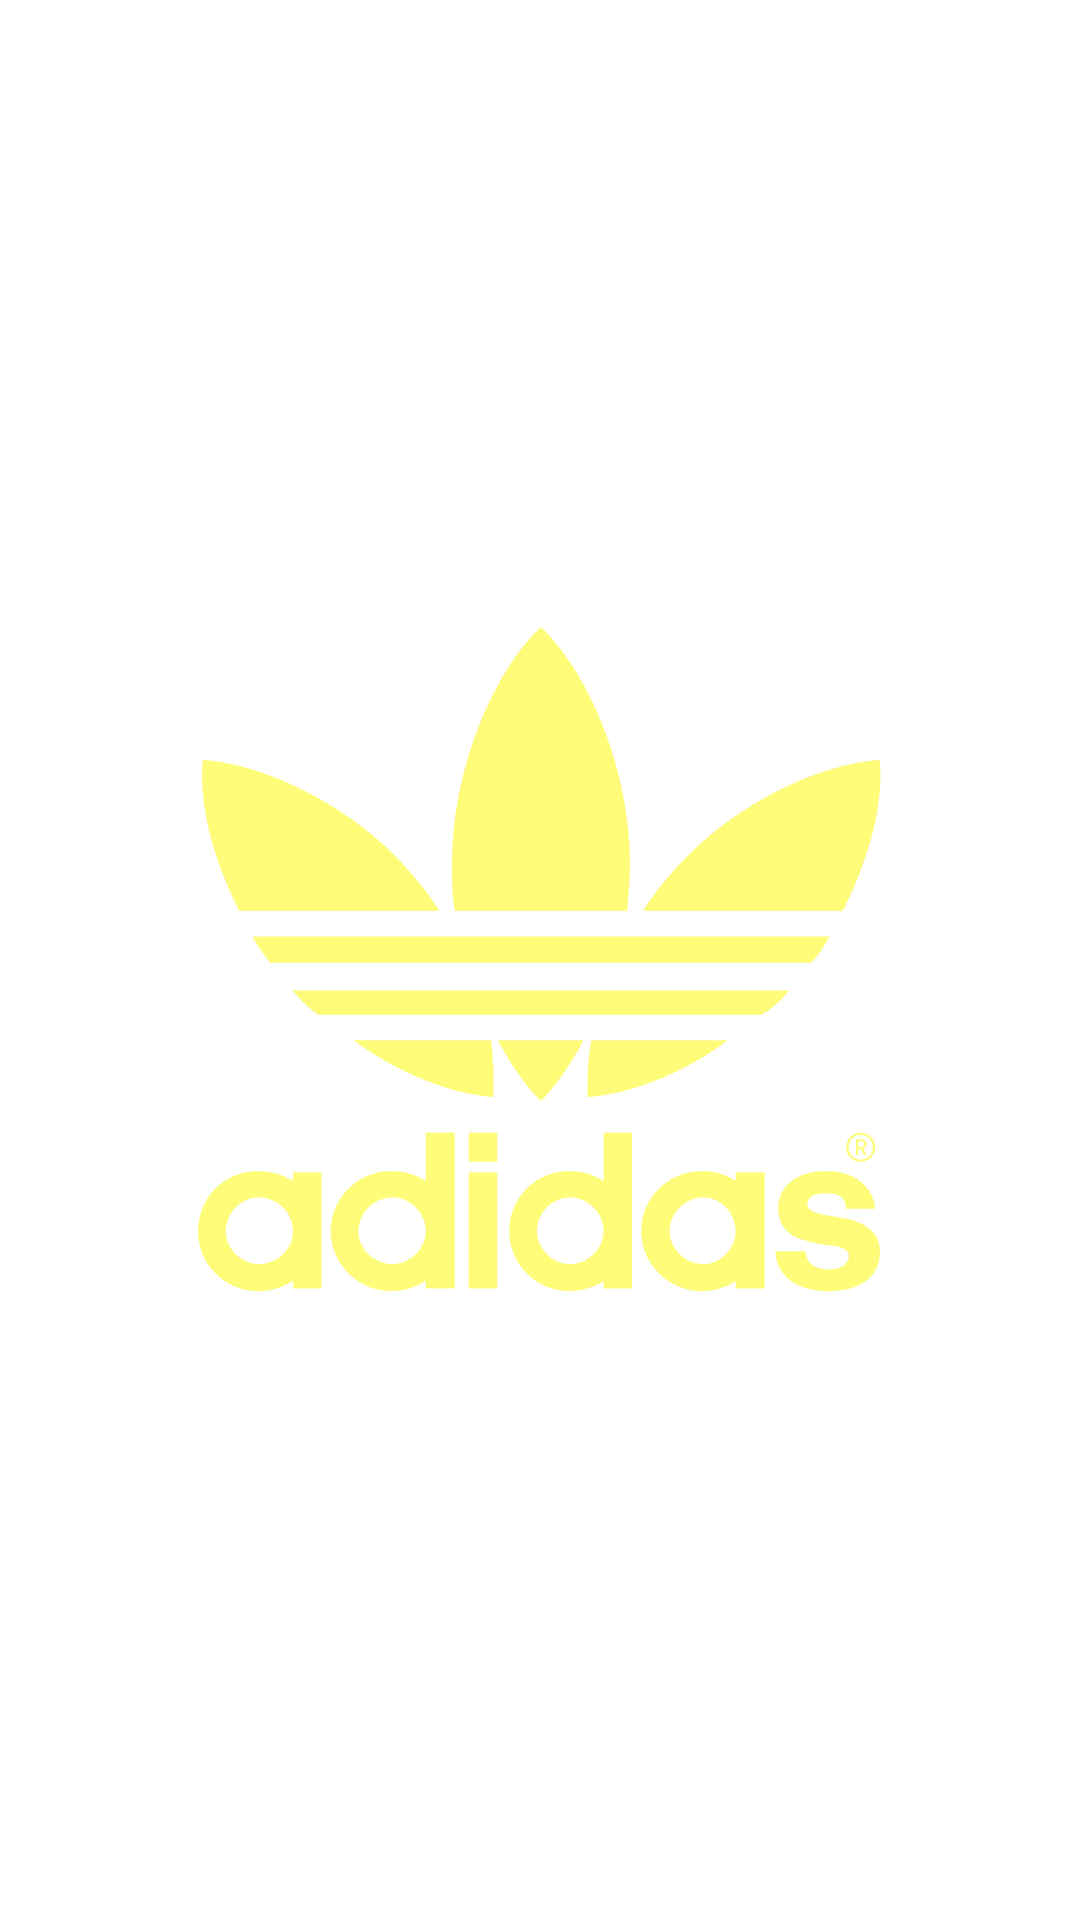 adidas09 - 25 adidas HQ Smartphone Wallpaper Collection